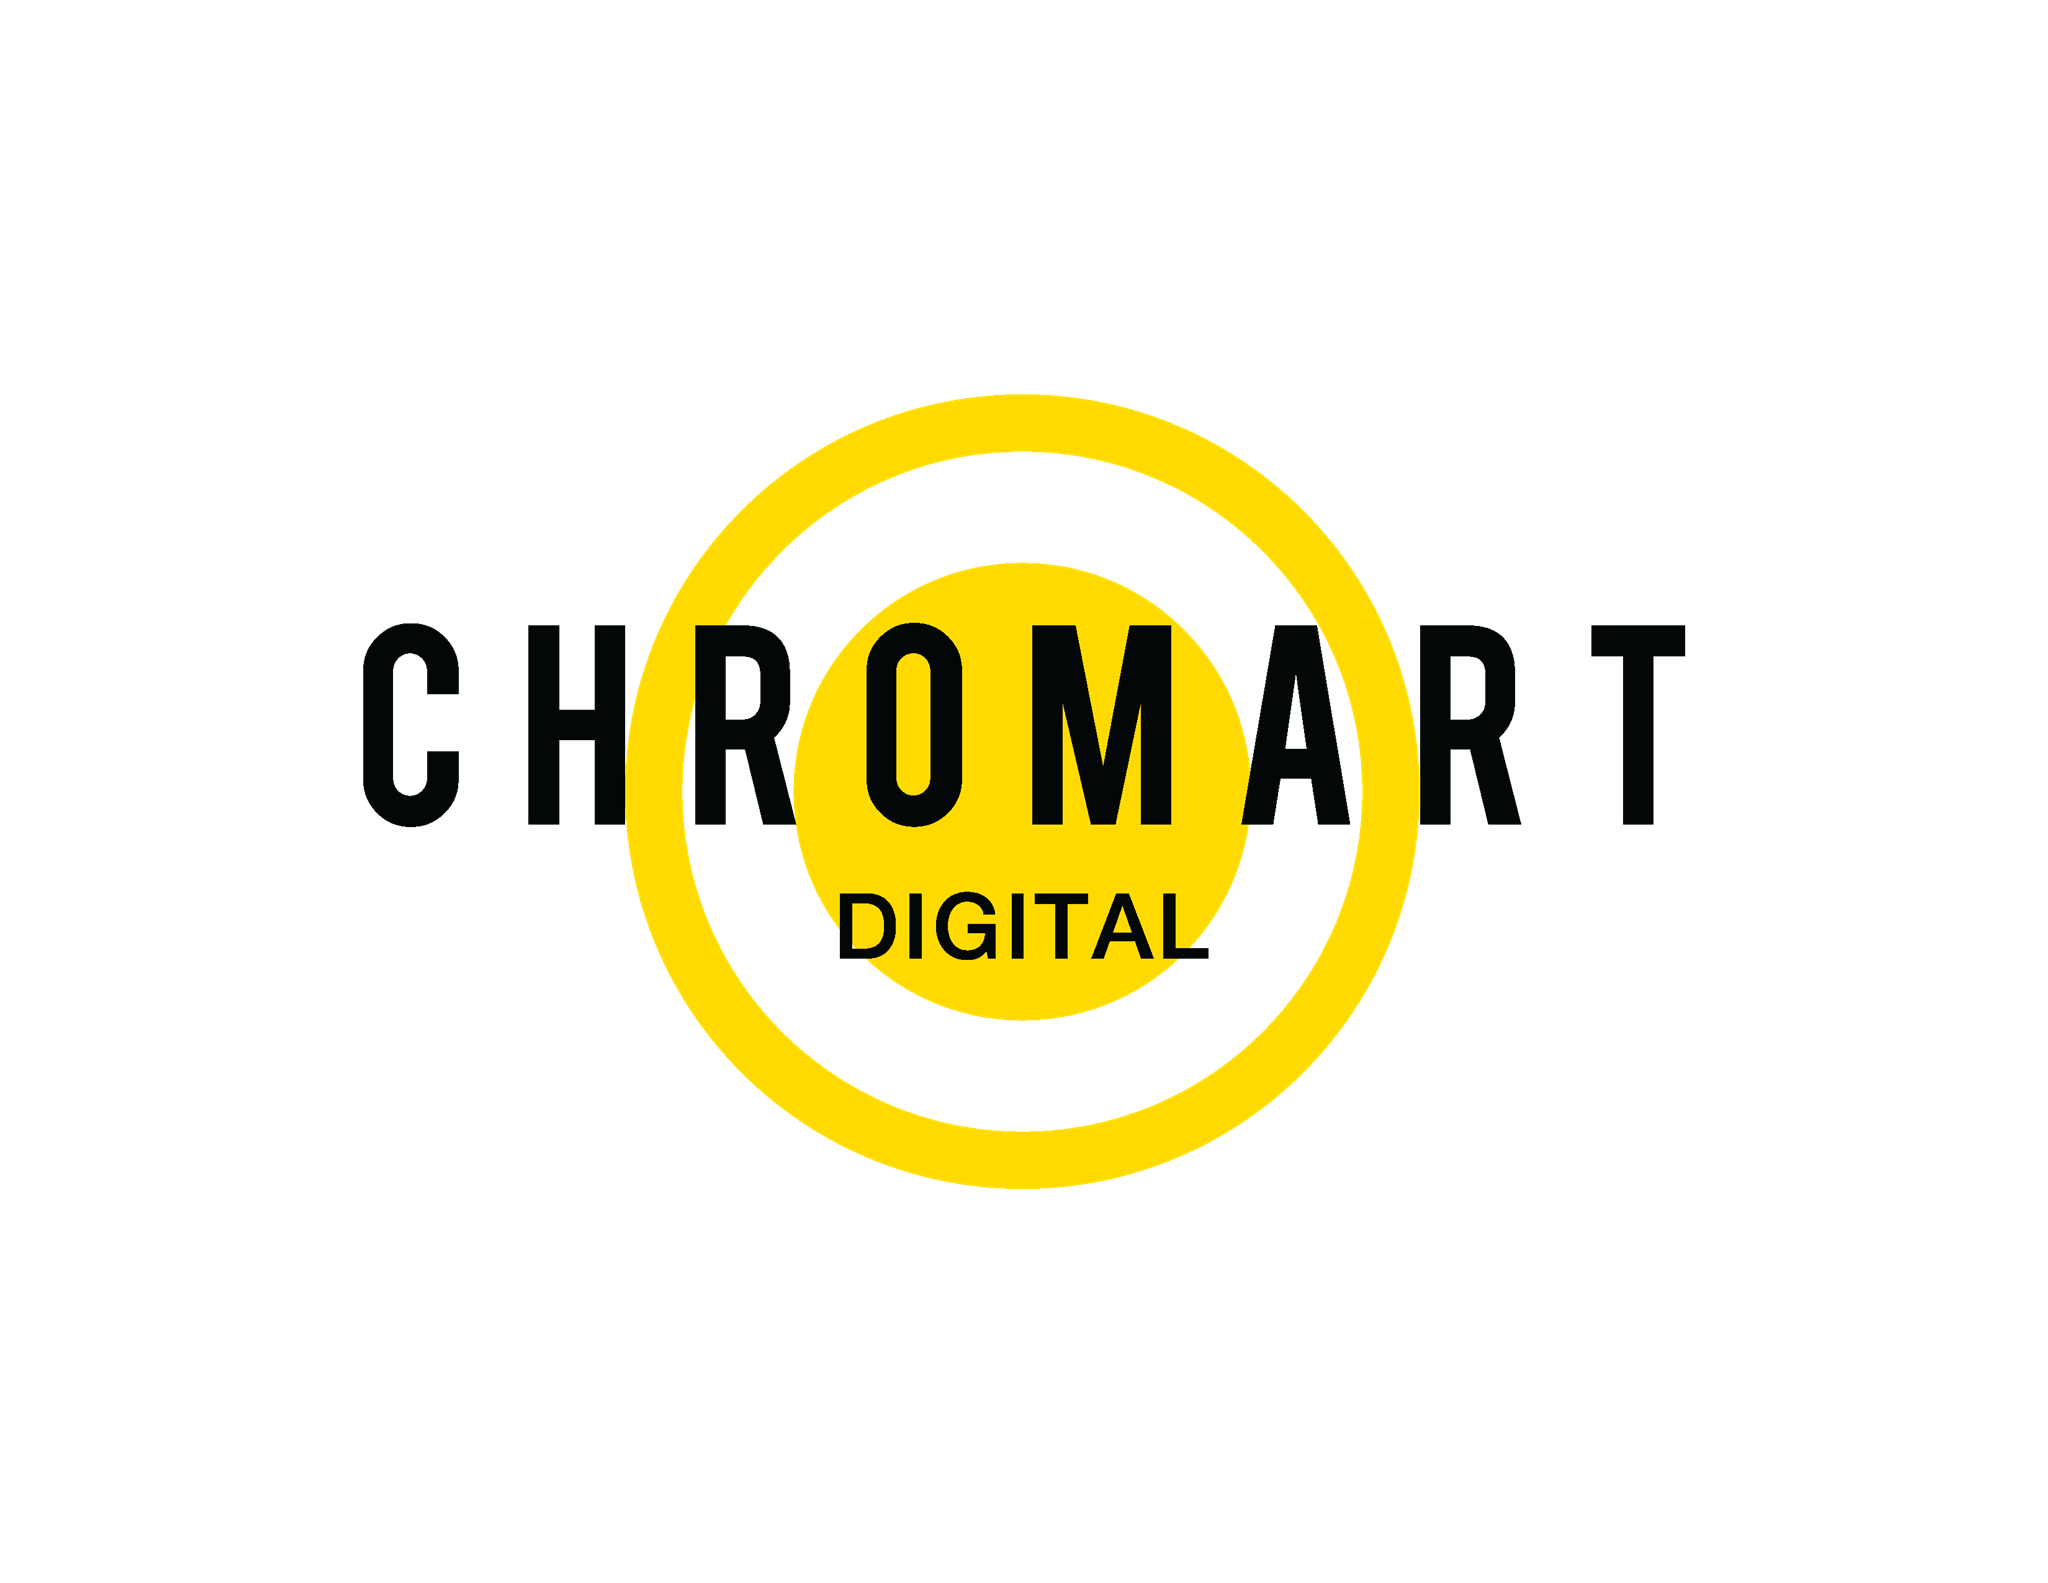 Chromart Digital logo